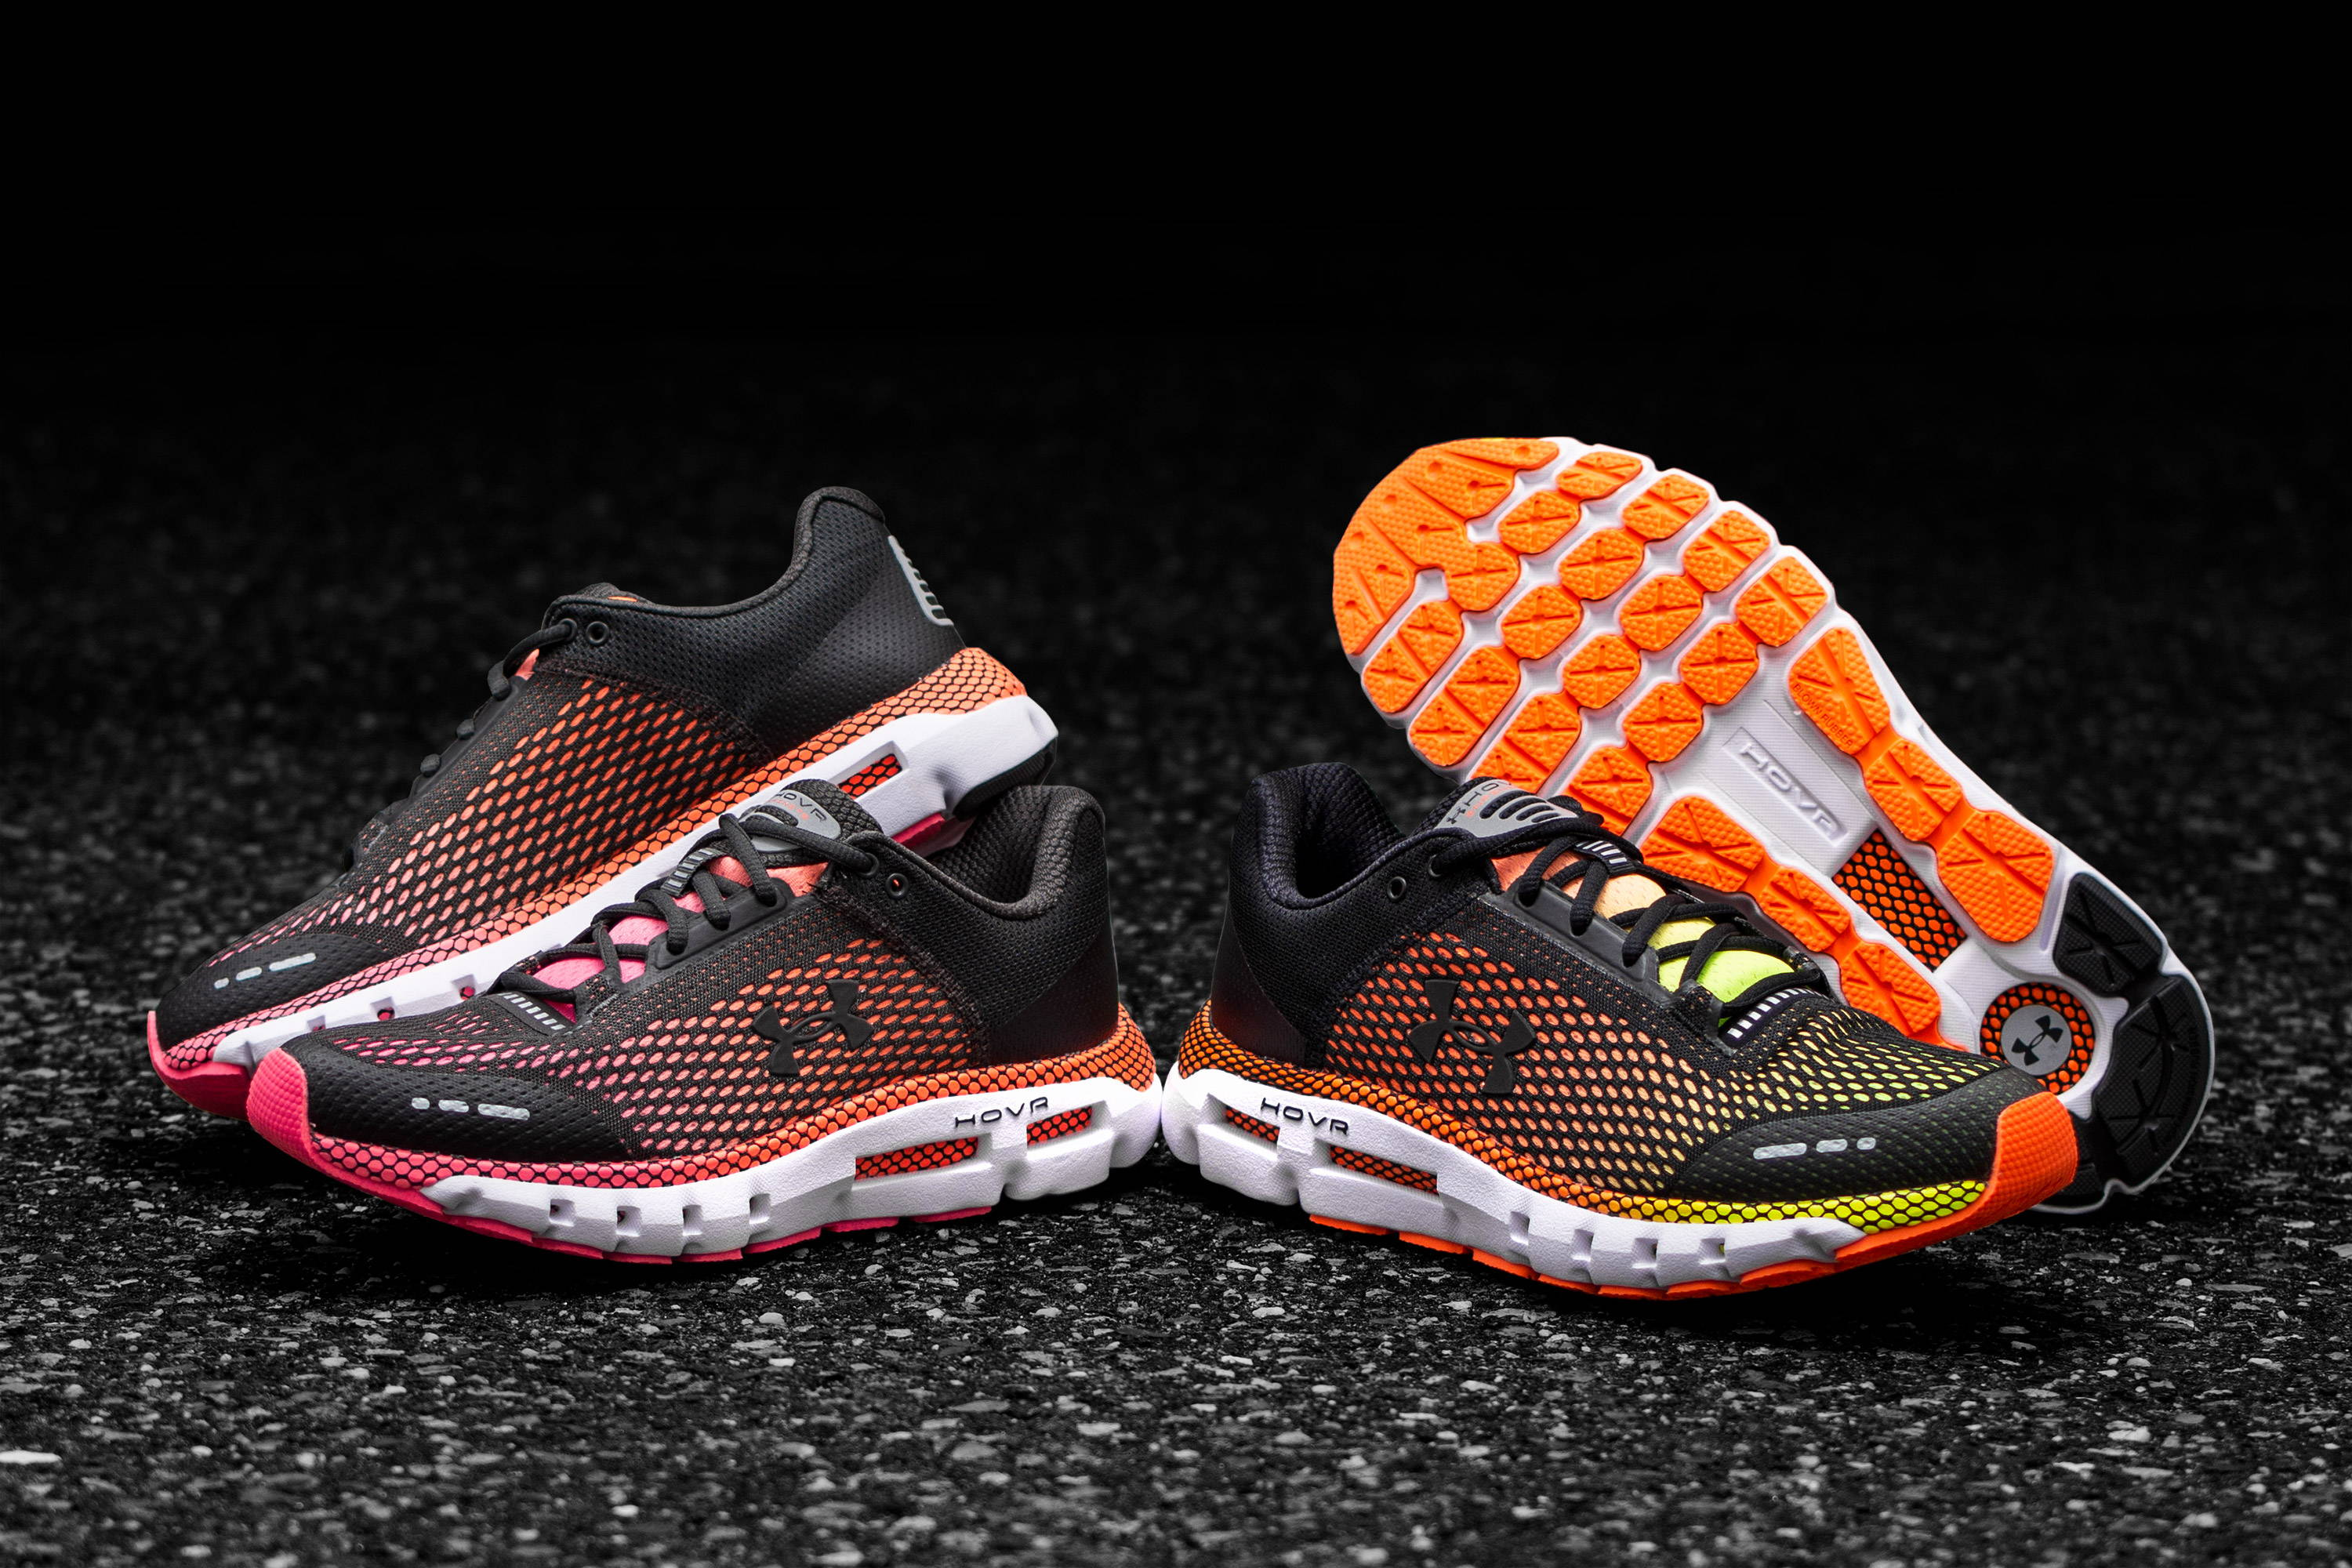 Under Armour HOVR Infinite shoes